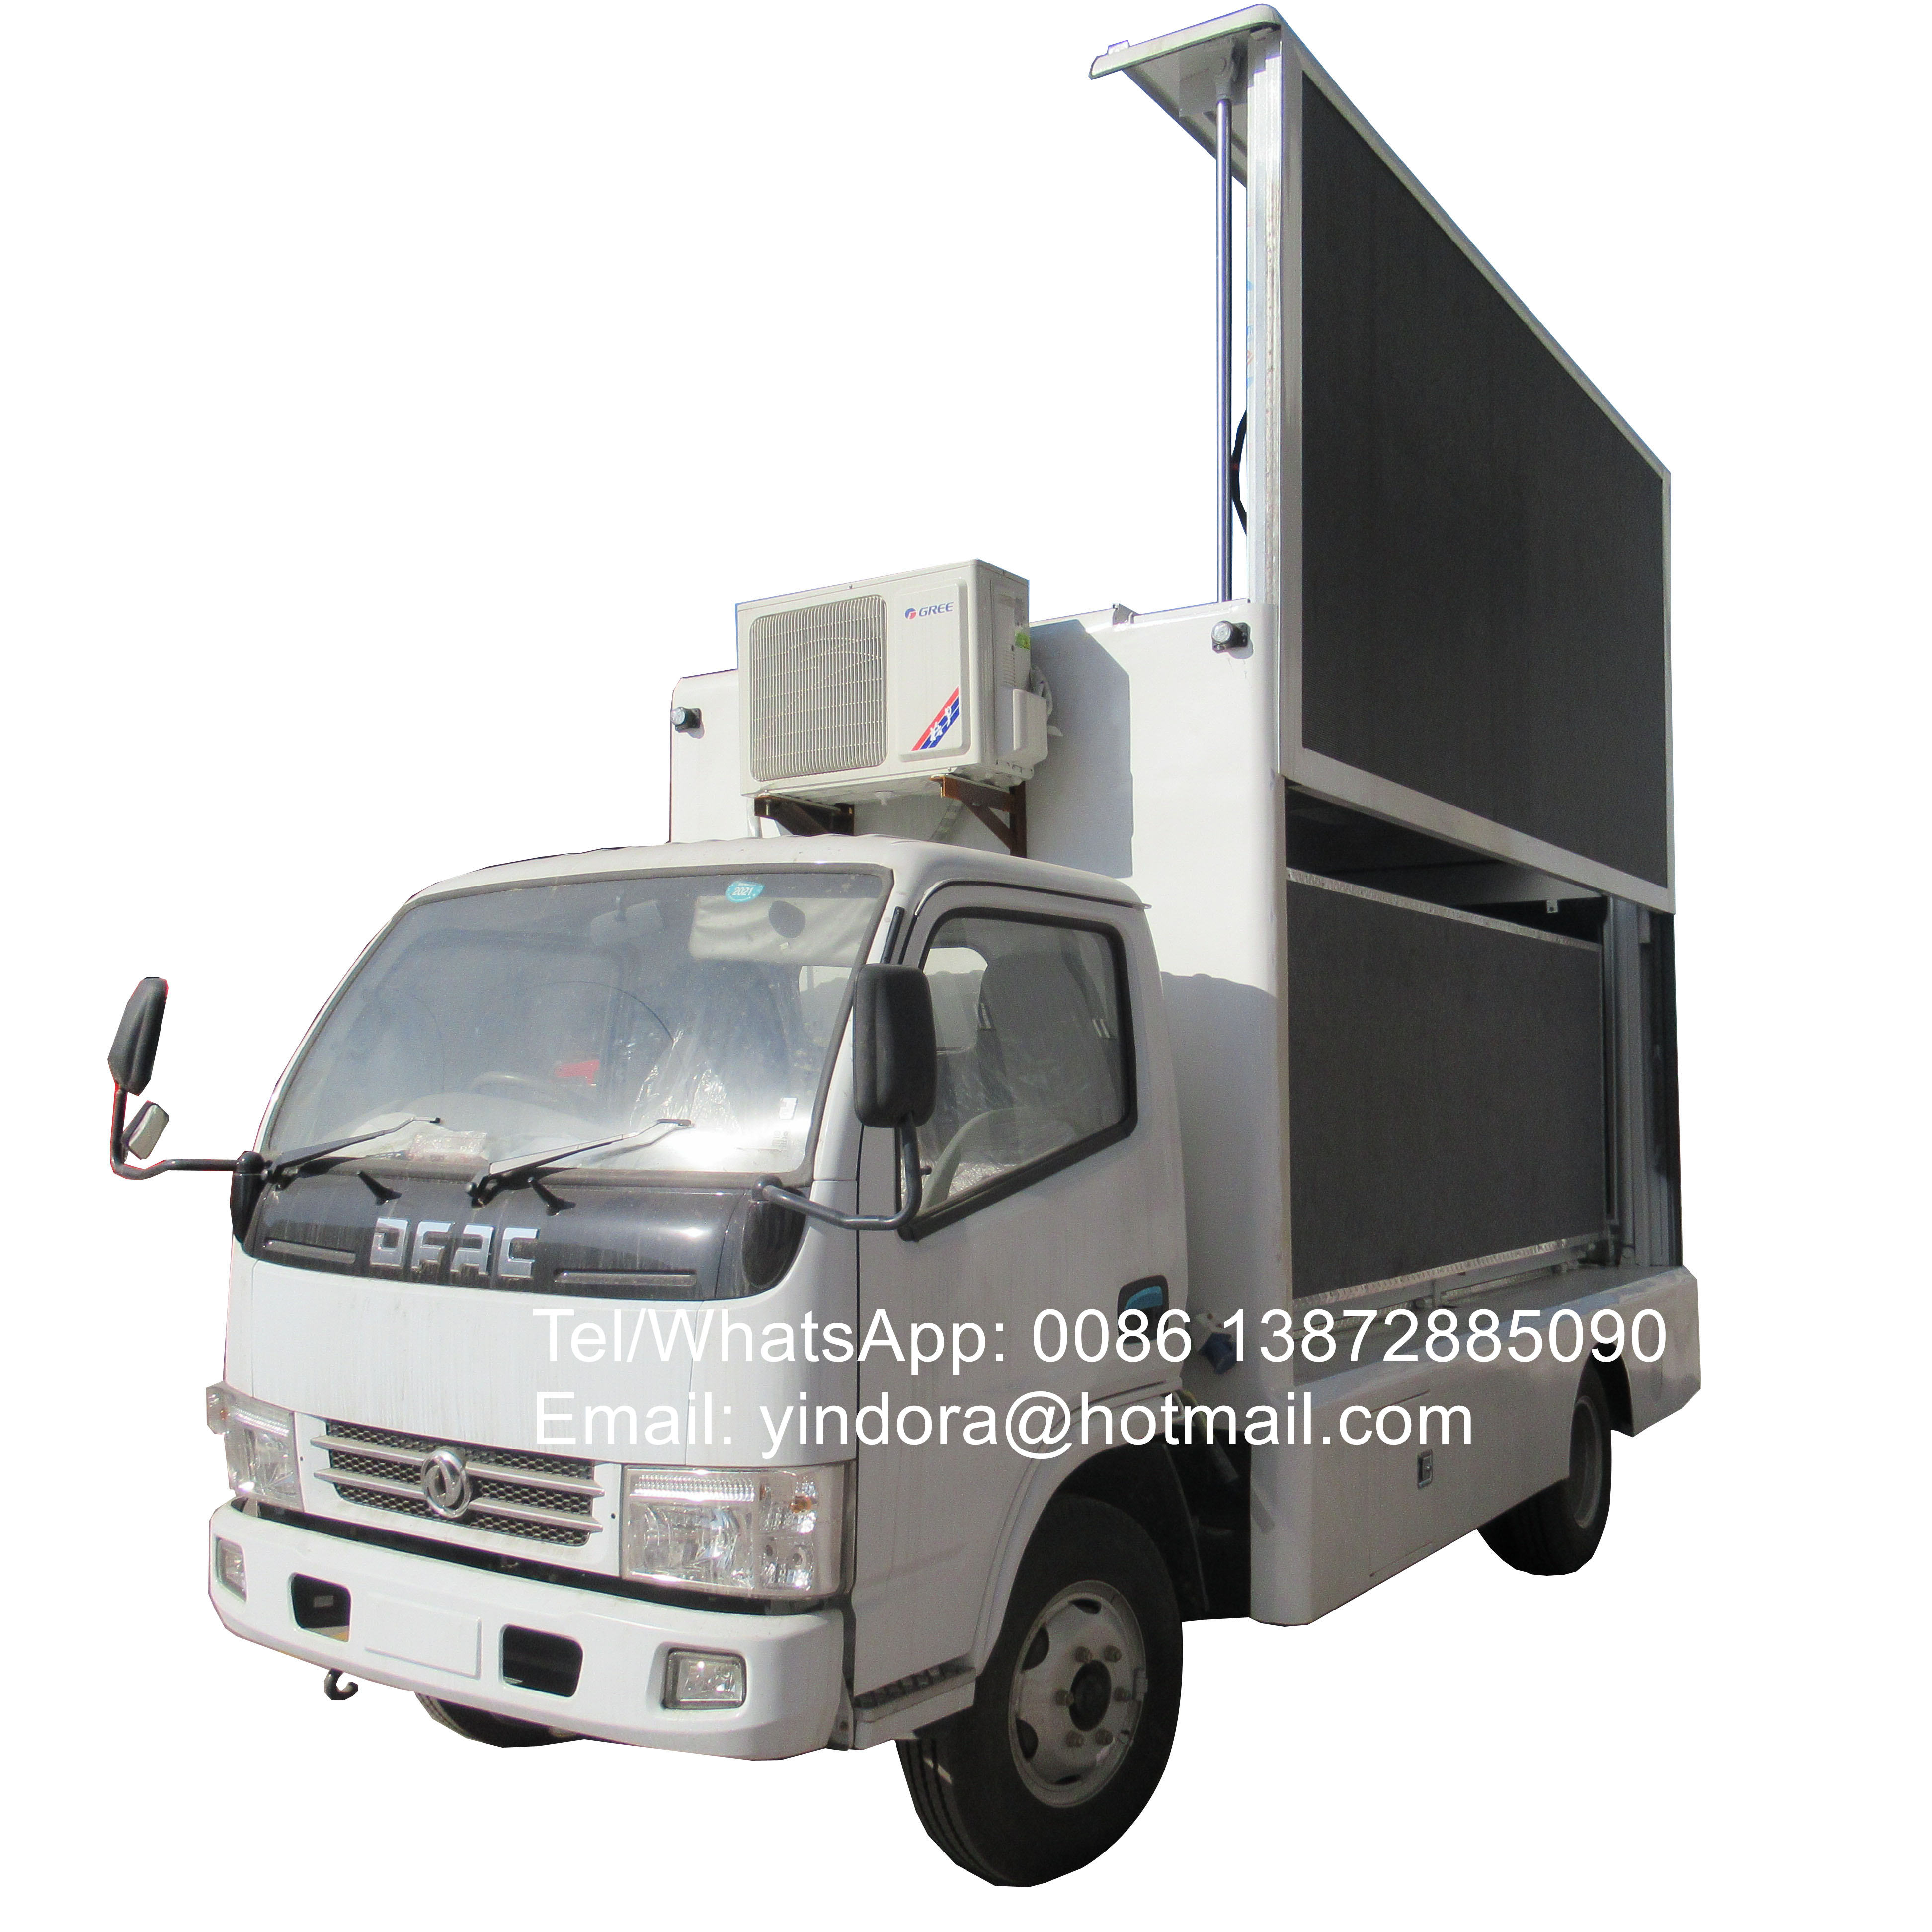 Computer control 3 sides billboard p6 screen dongfeng mobile mini led stage truck for outdoor events